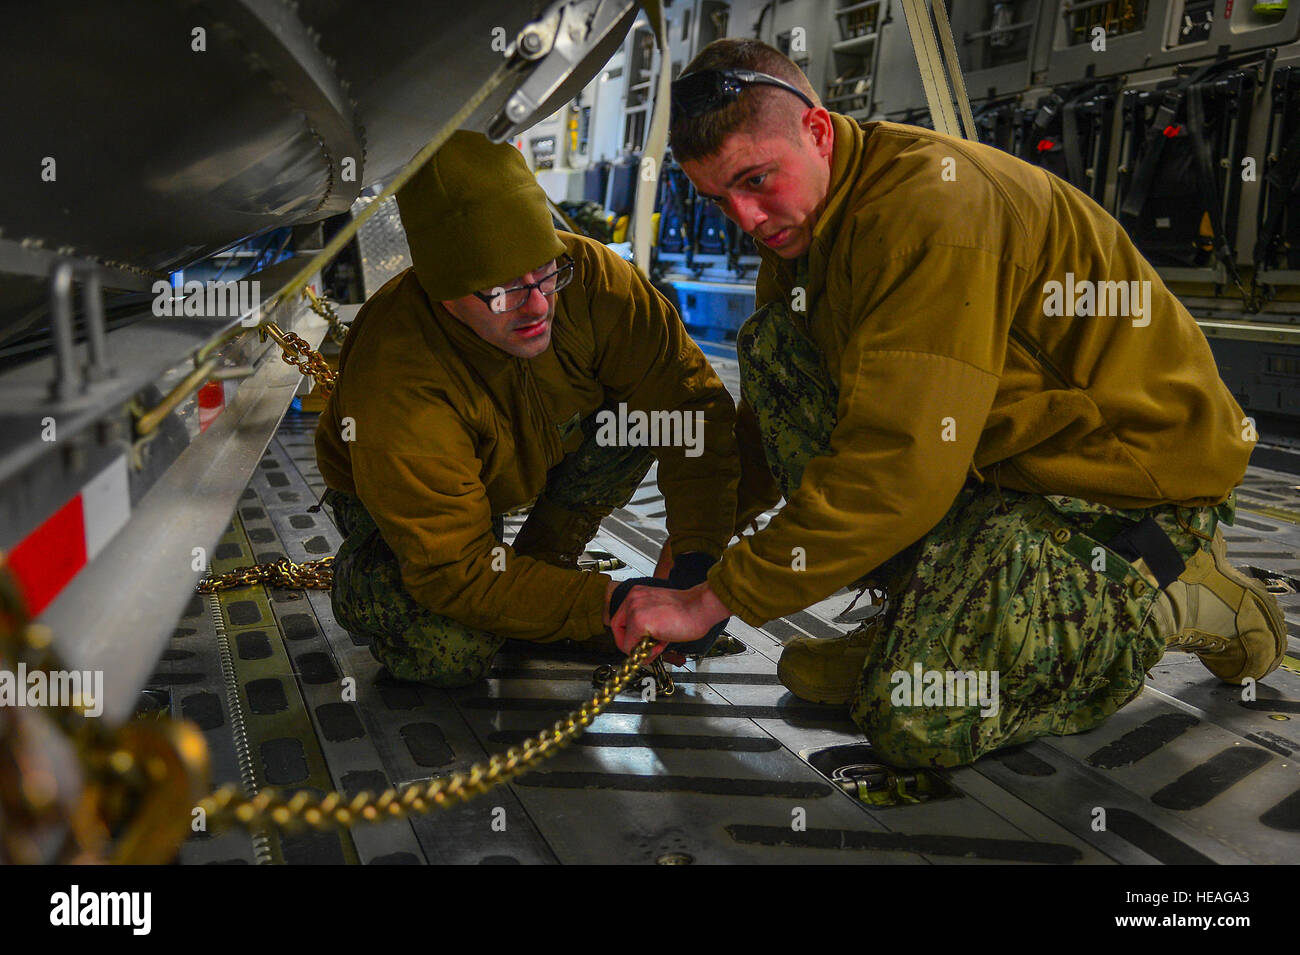 Petty Officer 2nd Class Matthew Farr (right), a machinery technician stationed at Port Security Unit 309 in Port Stock Photo